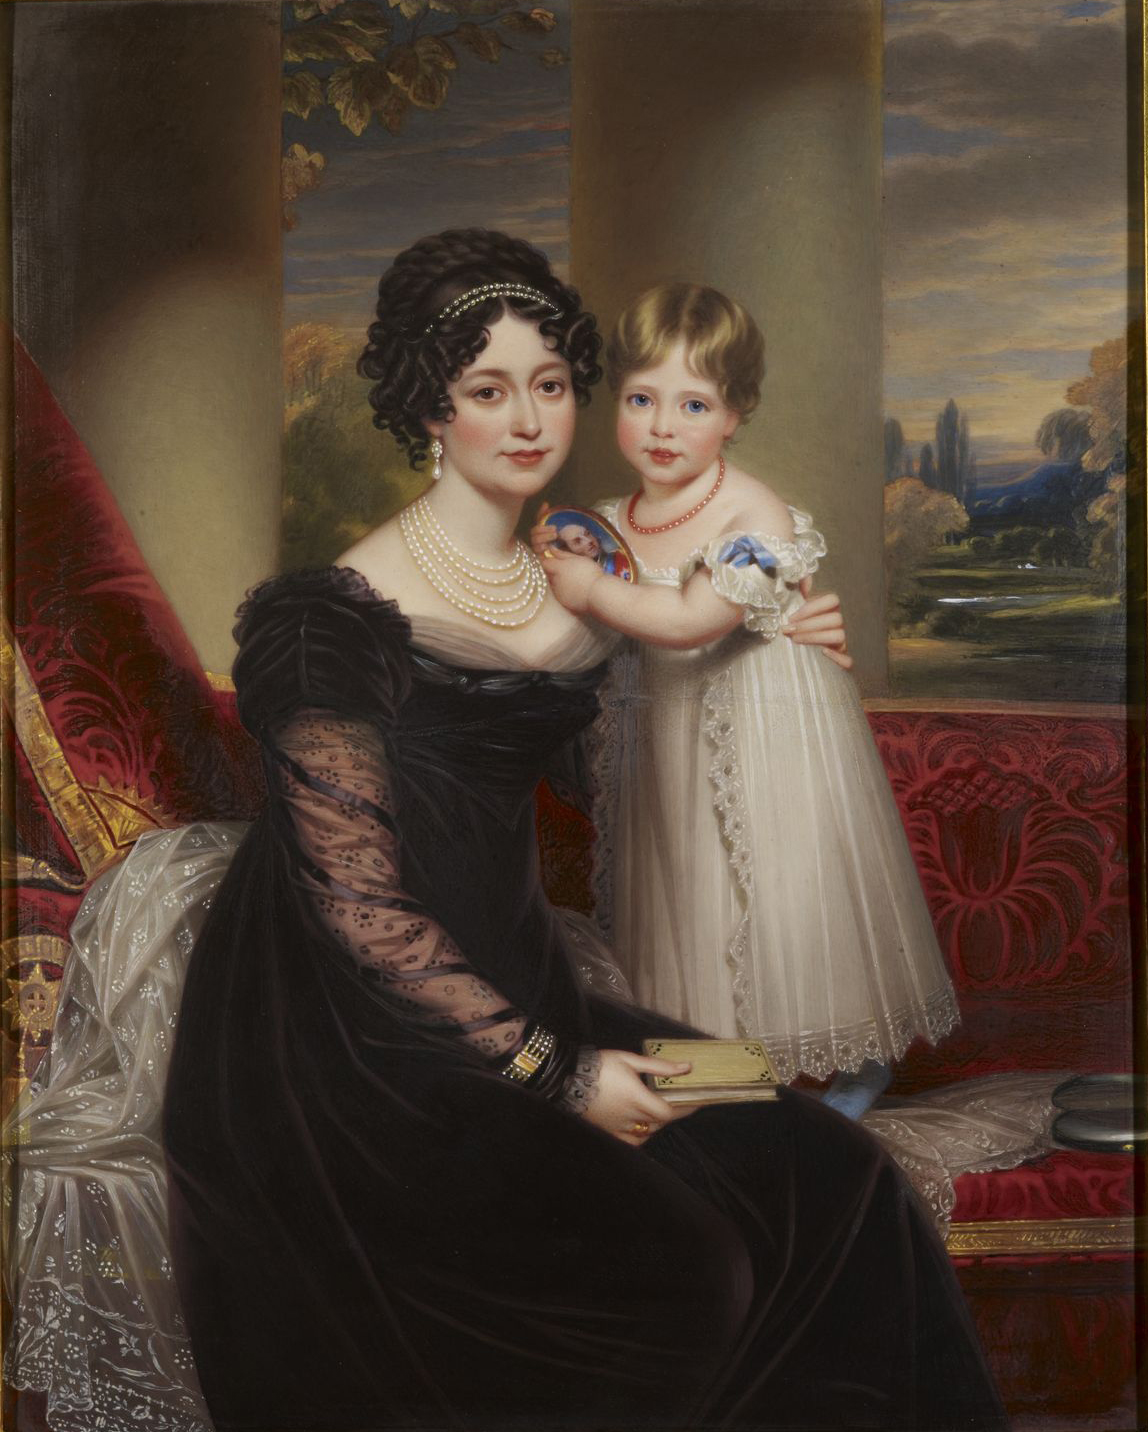 The duchess of Kent with her daughter, the future queen Victoria by Henry Bone, 1825